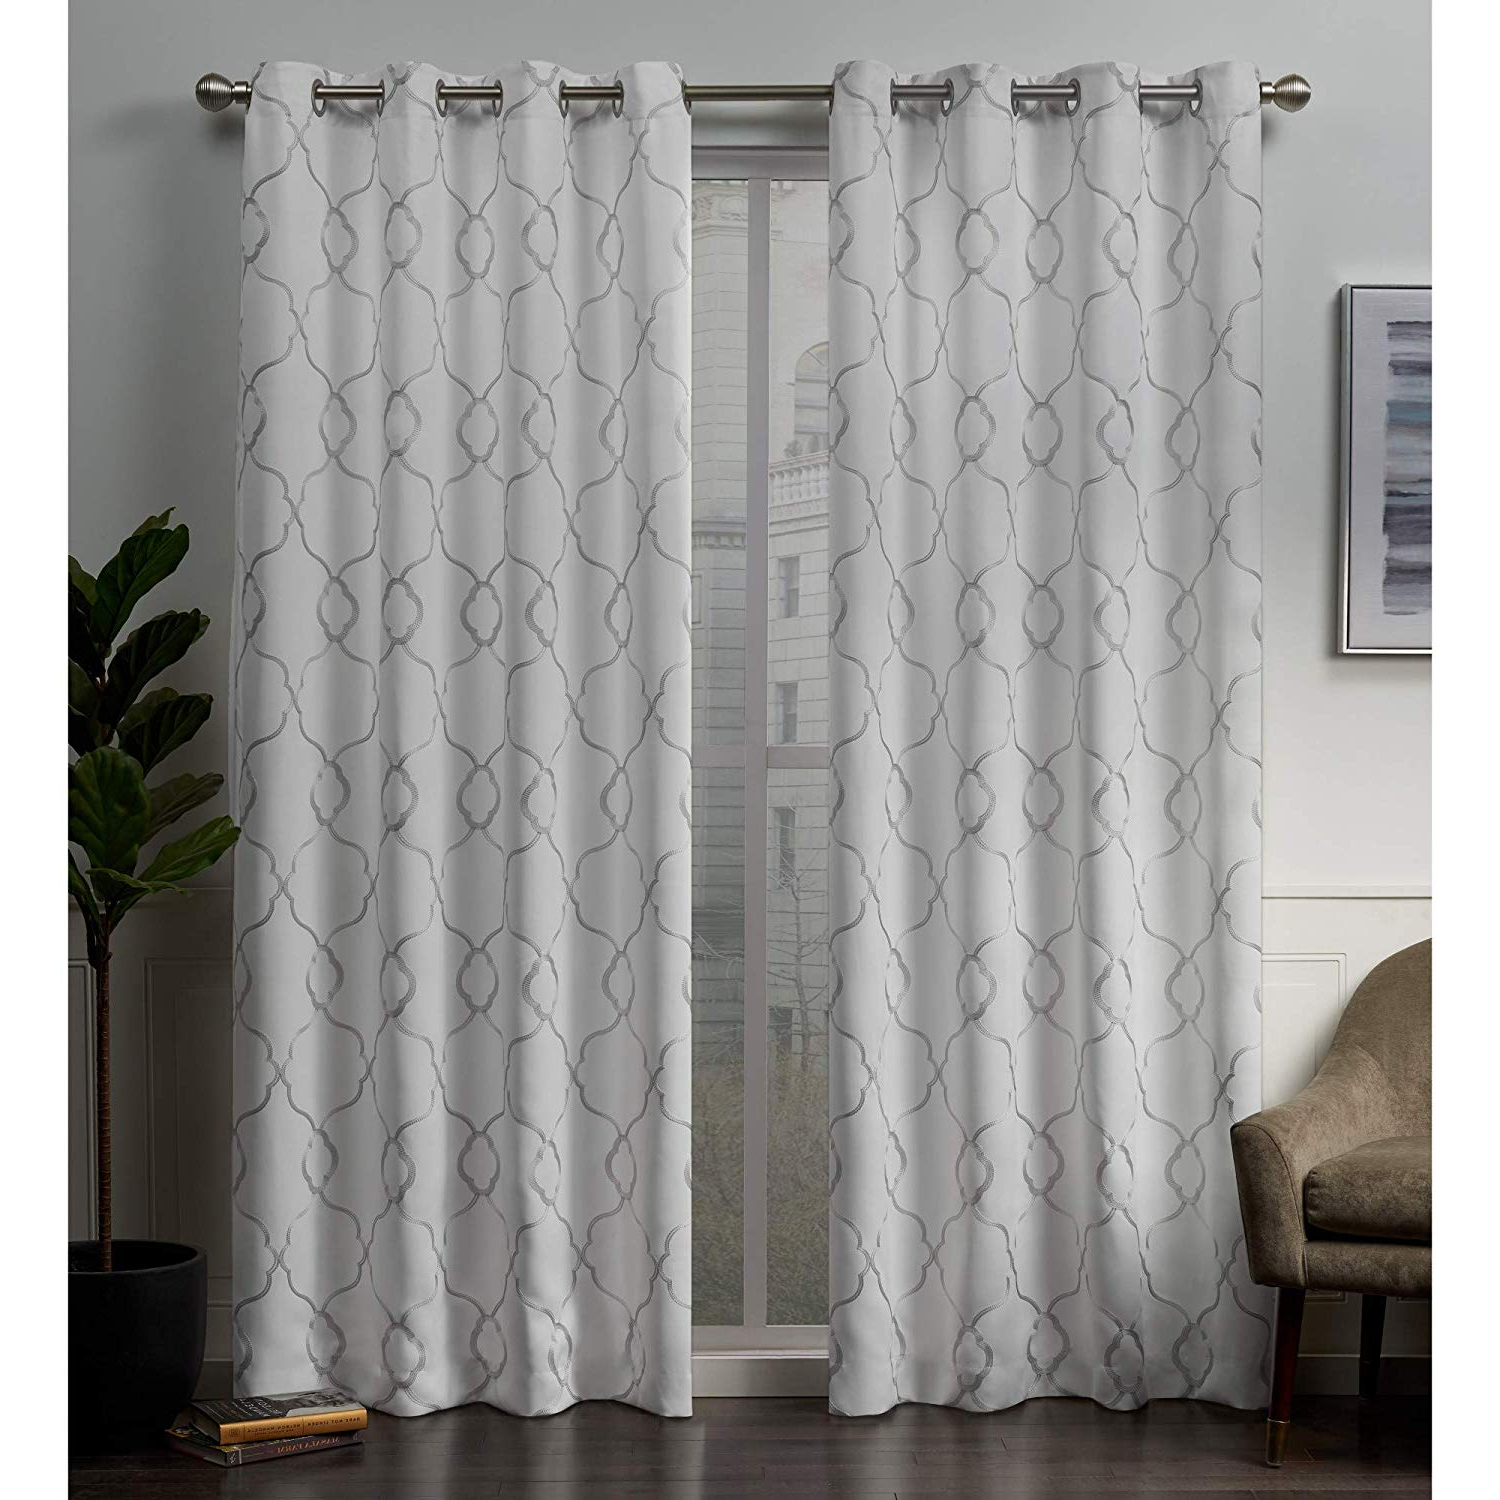 Most Recent Woven Blackout Curtain Panel Pairs With Grommet Top In Exclusive Home Curtains Belmont Embroidered Woven Blackout Grommet Top  Curtain Panel Pair, 52x96, Winter (View 1 of 20)